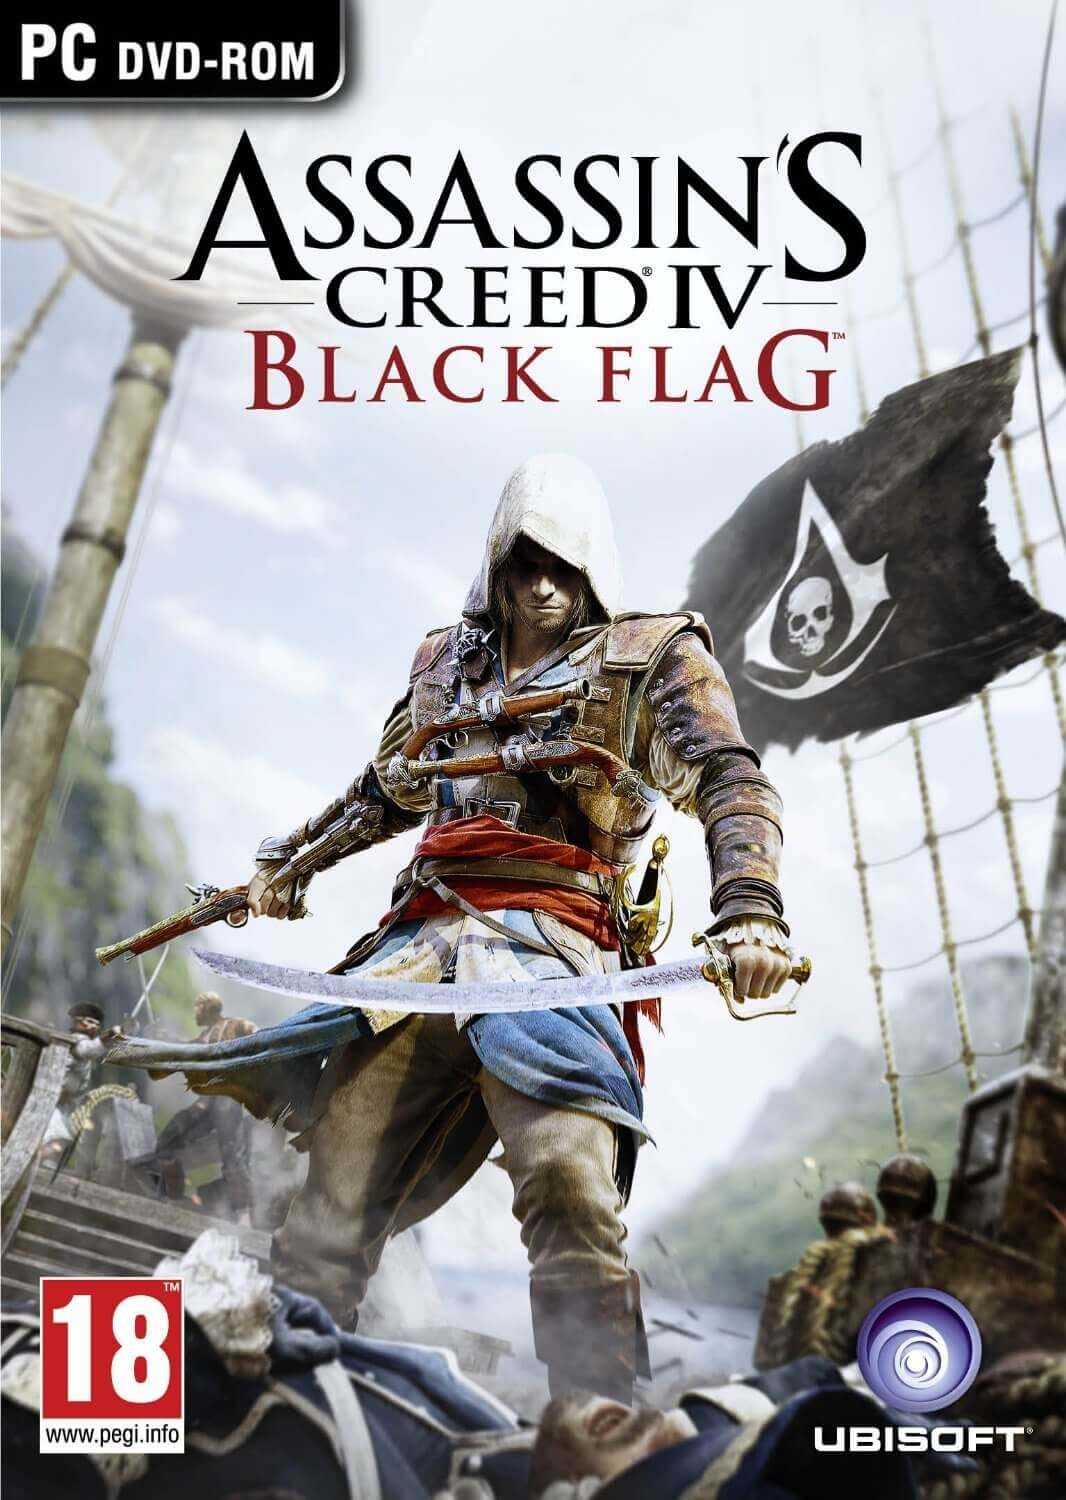 Assassin's Creed Black Flag Game + Season pass PC Code